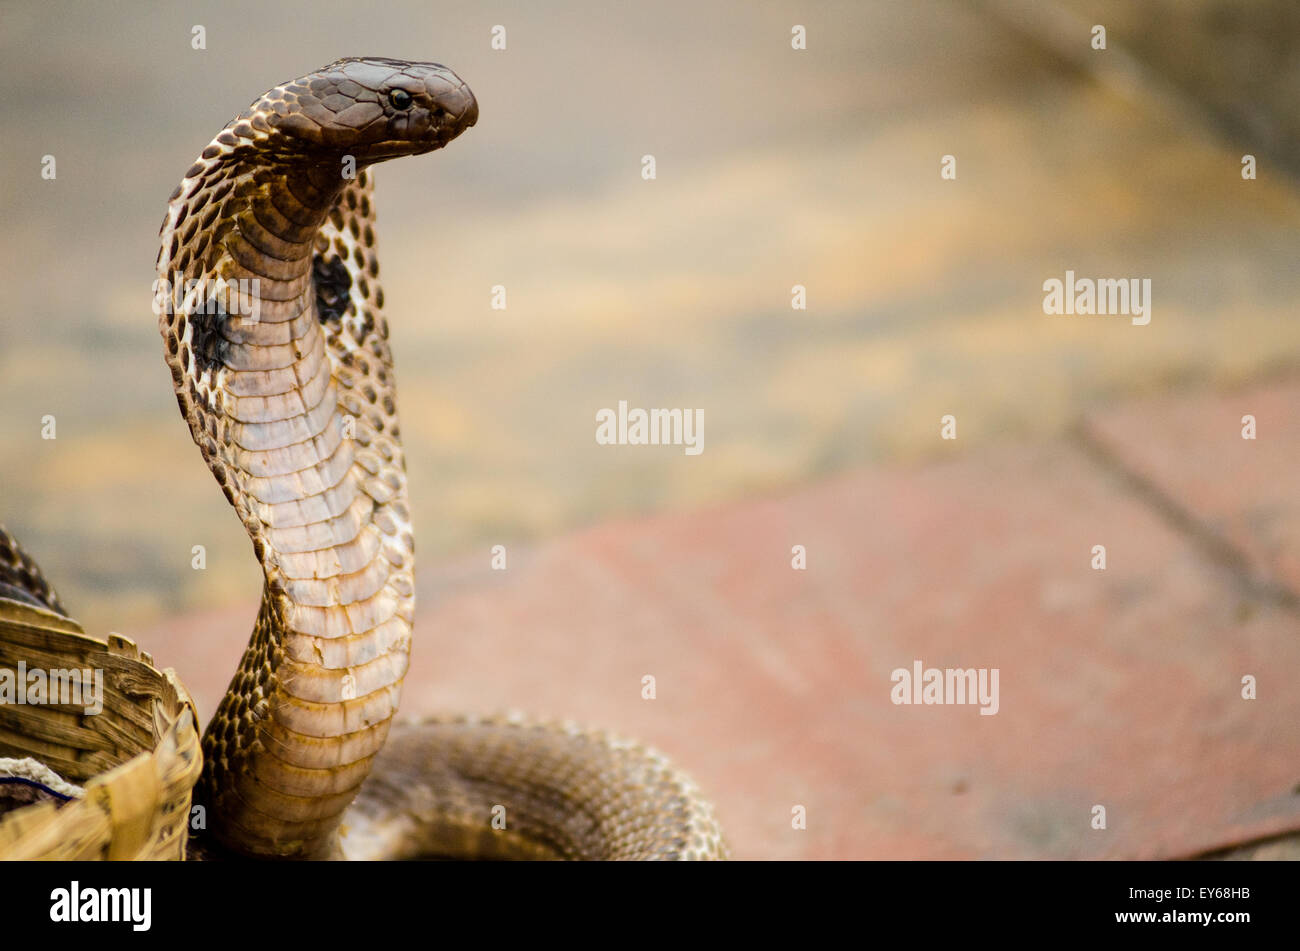 Standing Snake High Resolution Stock Photography And Images Alamy